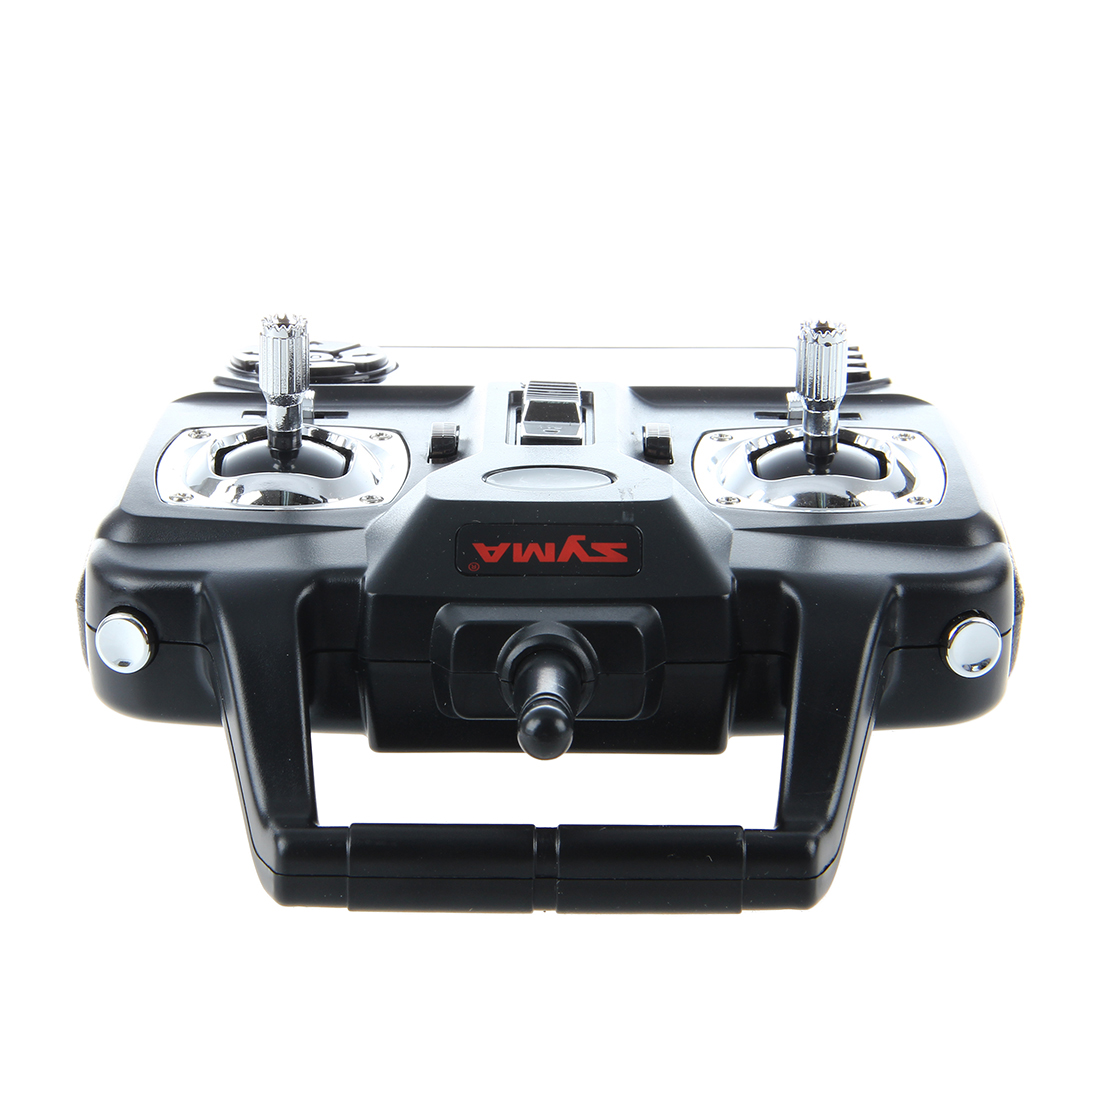 Syma Transmitter Remote Control for SYMA X5 and X5C Quadcopter Drone Remote Control, Black remote service discovery and control